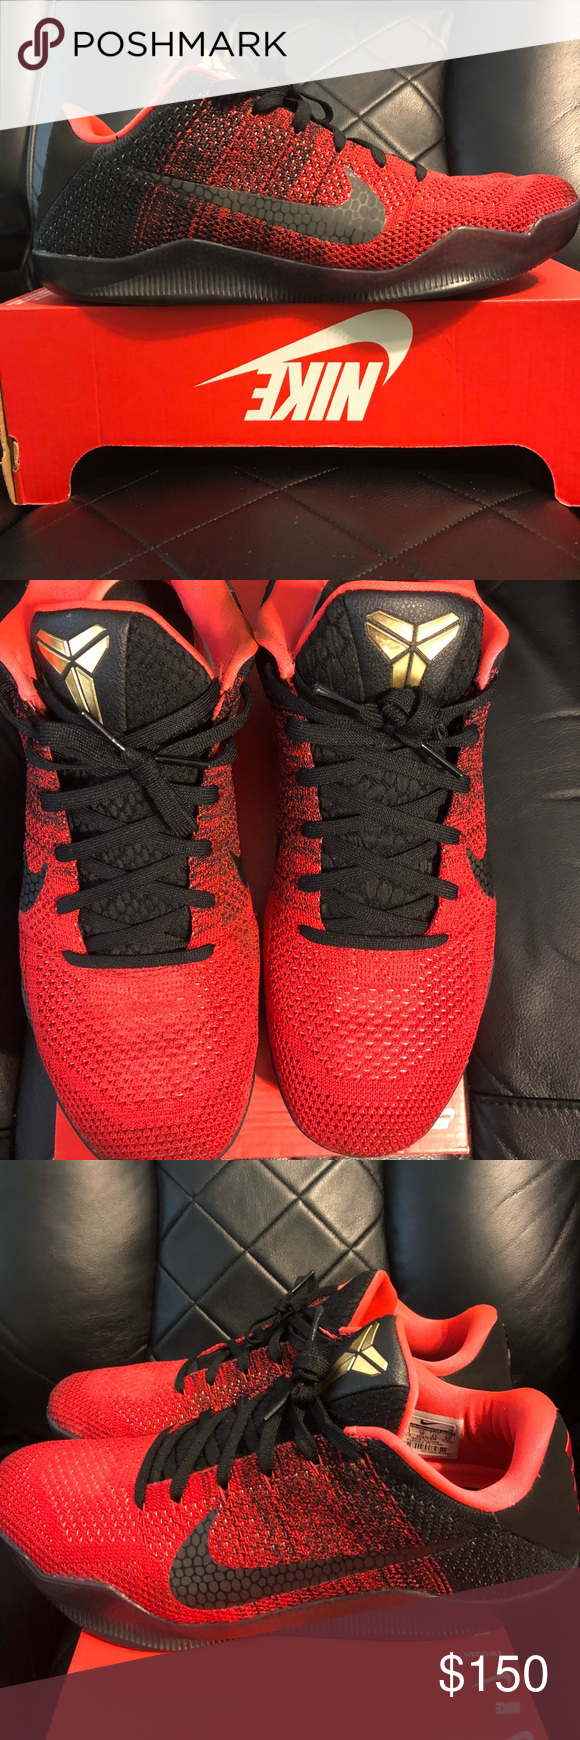 0192f76522c1 ... where can i buy nike kobe 11 elite achilles heel size 11 rare nike kobe  11